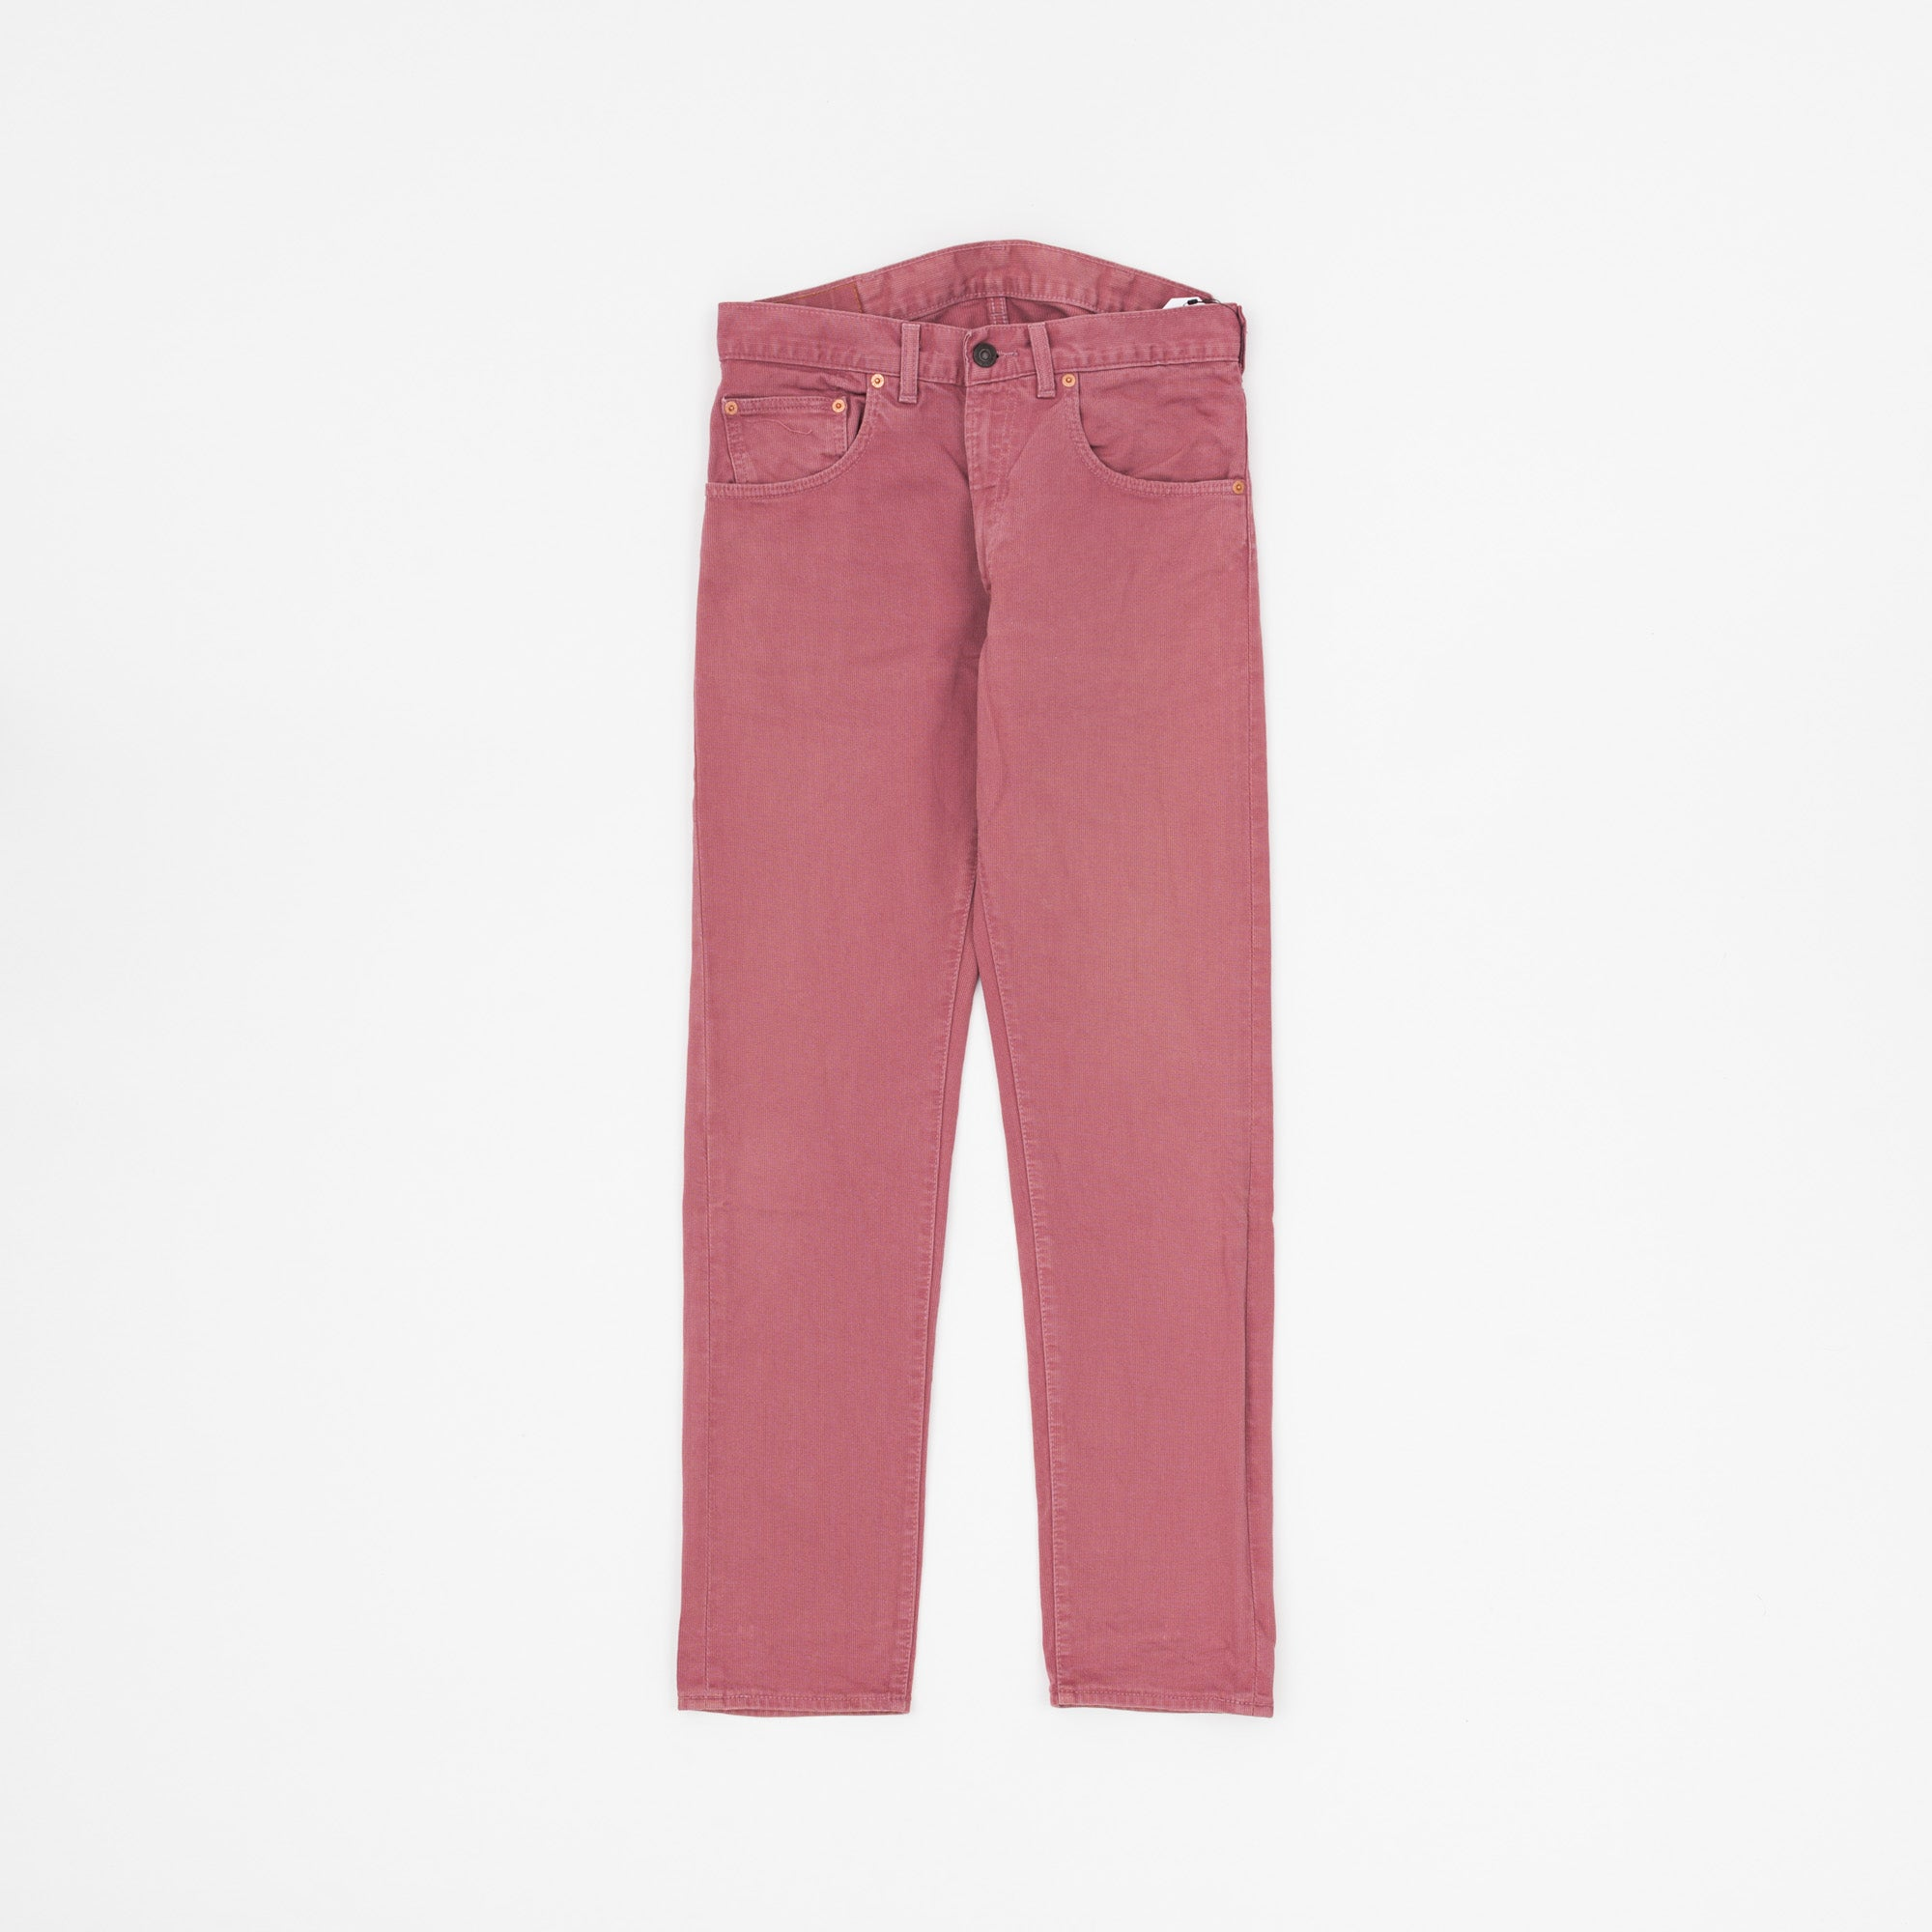 Lot 519 Bedford Trousers